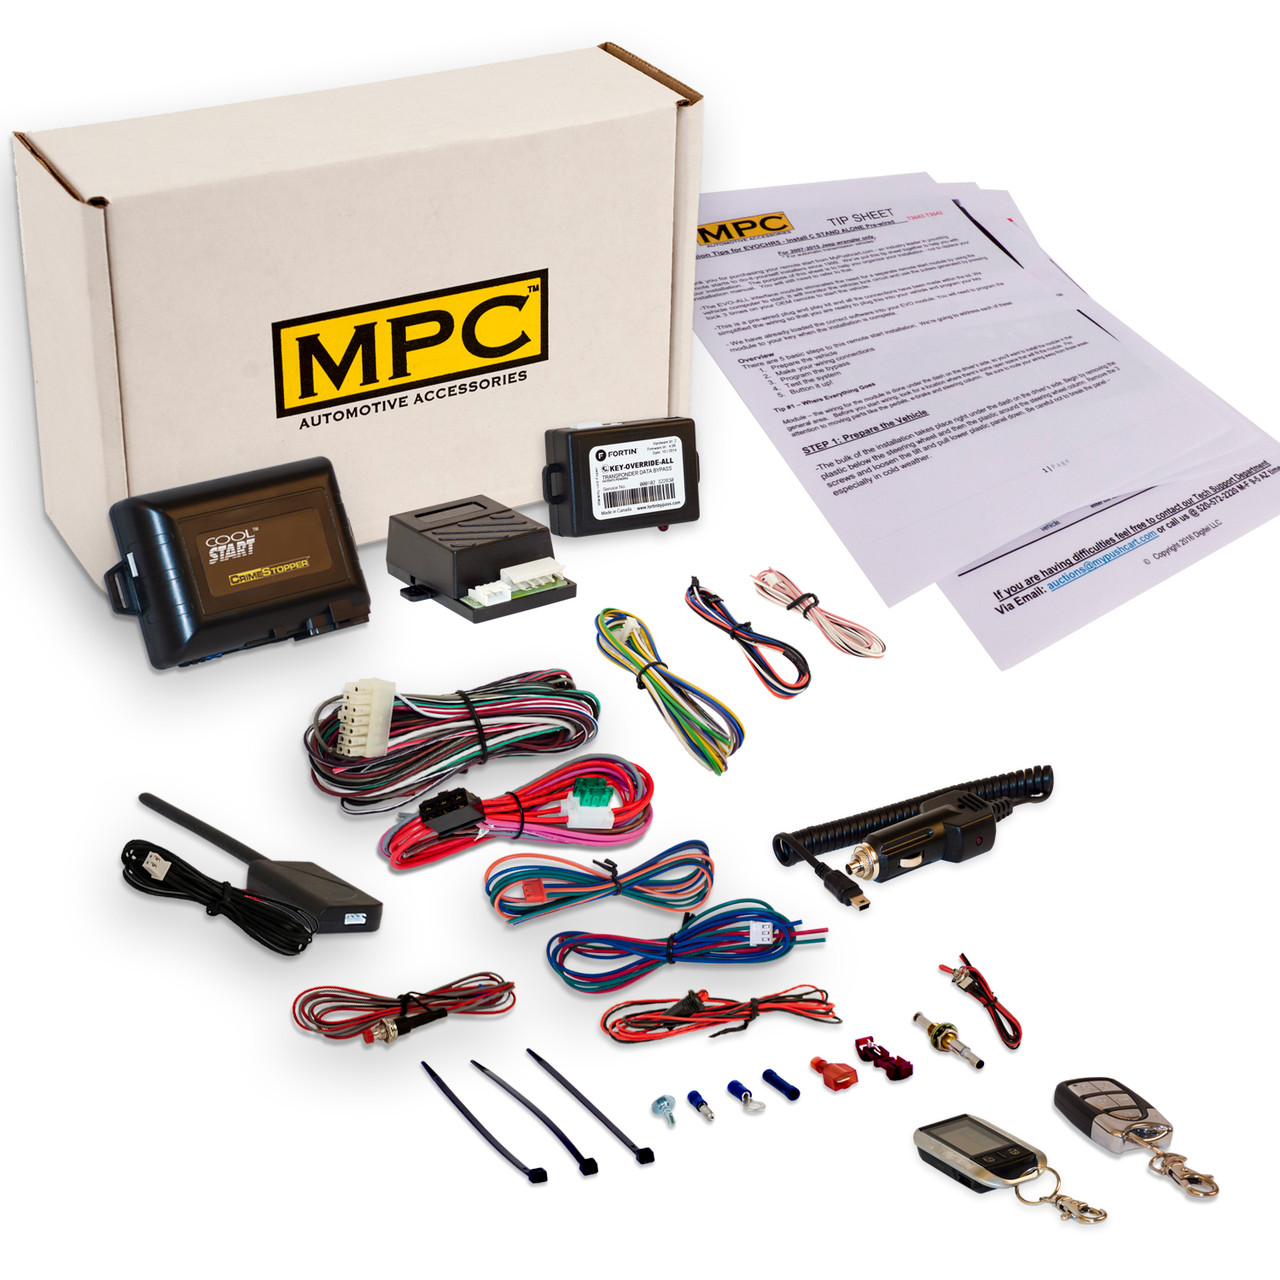 MPC Ford F-350 2007 2 Way LCD Remote Start With Keyless Entry Kit